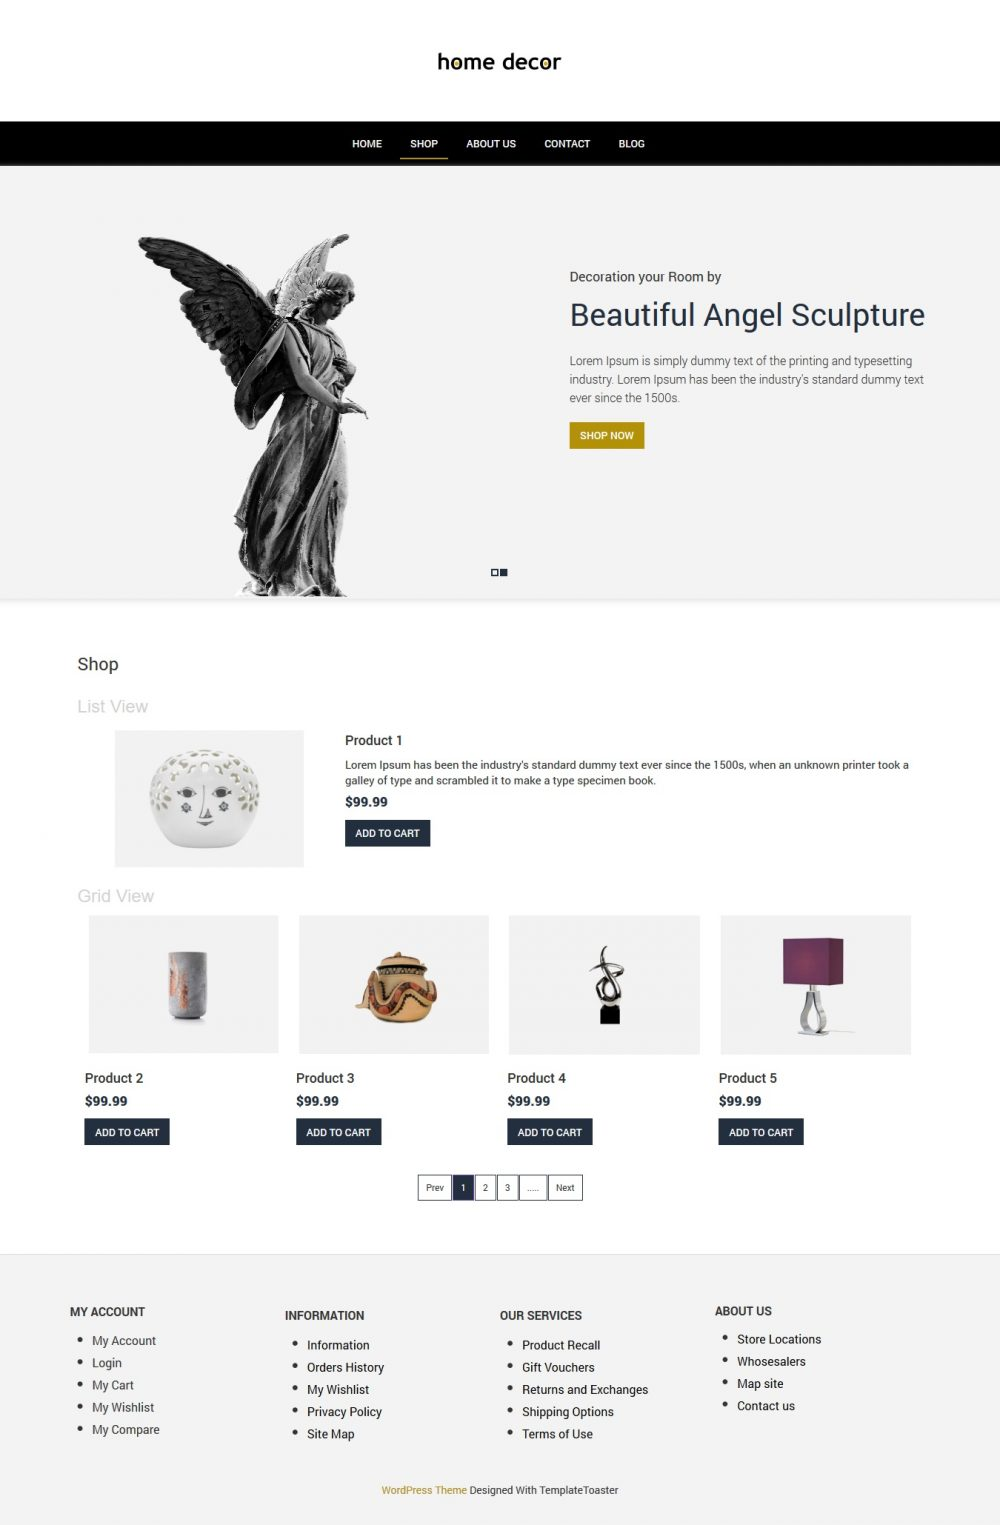 Home Decor - Home Interior Woocommerce Theme